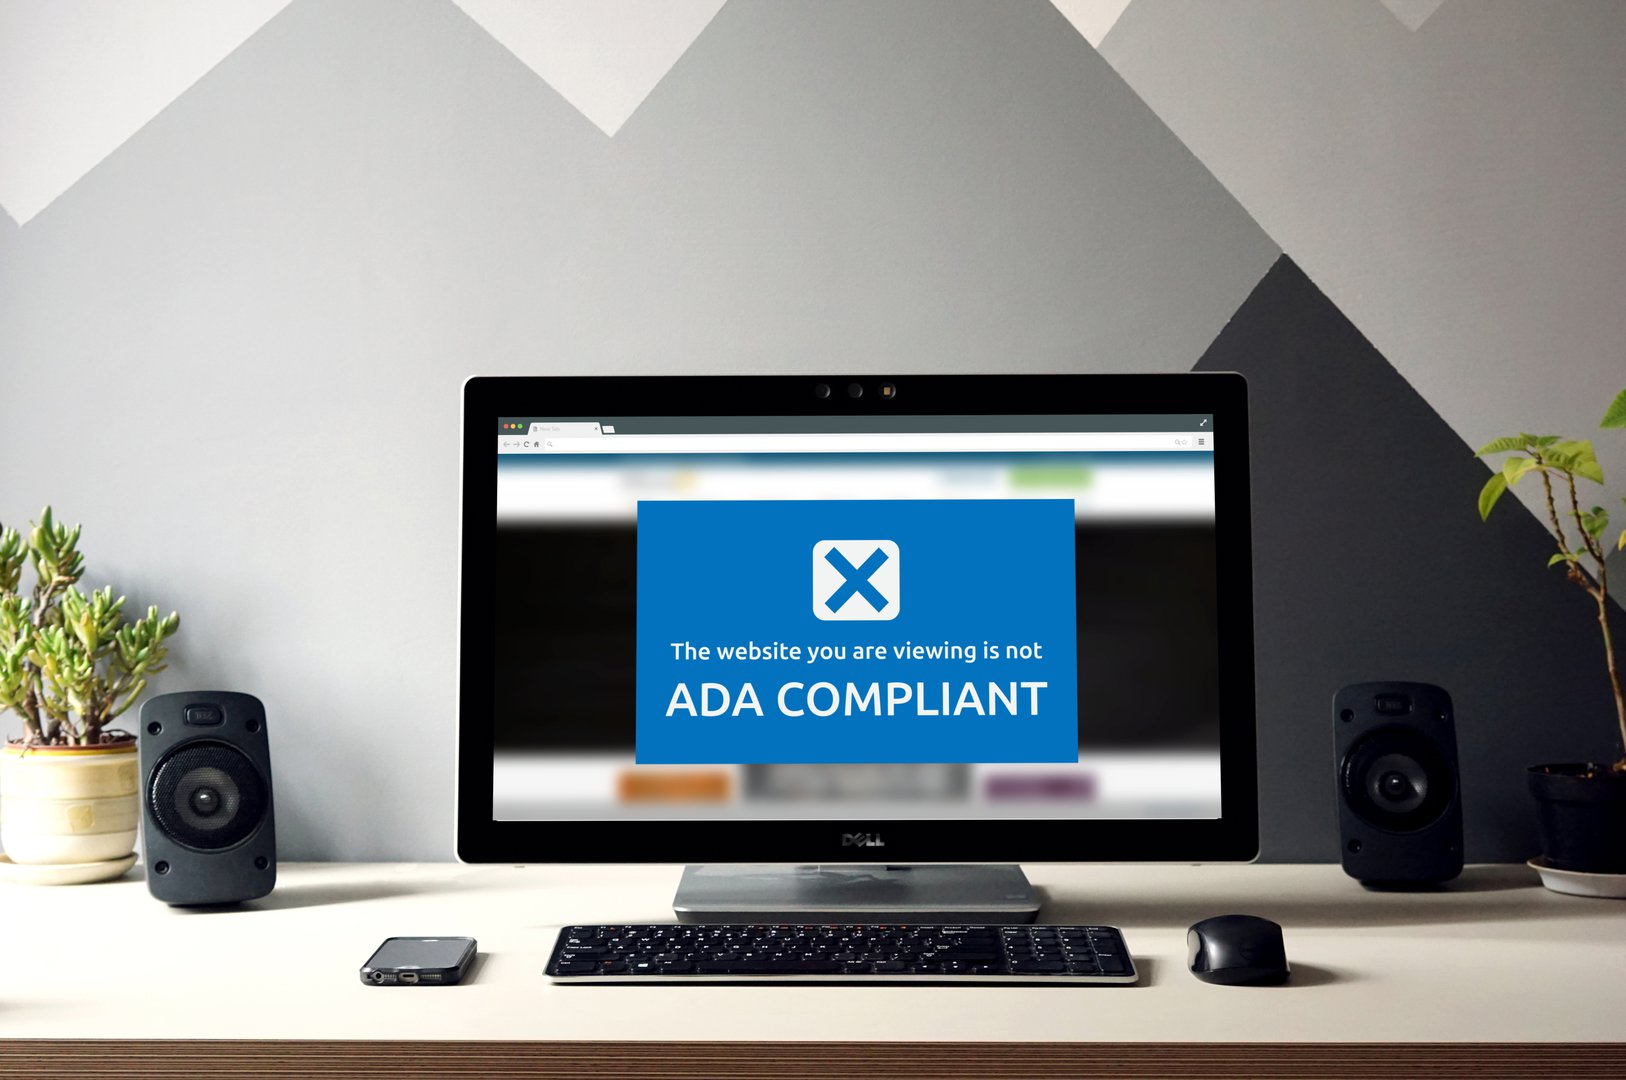 ADA Compliance in Websites